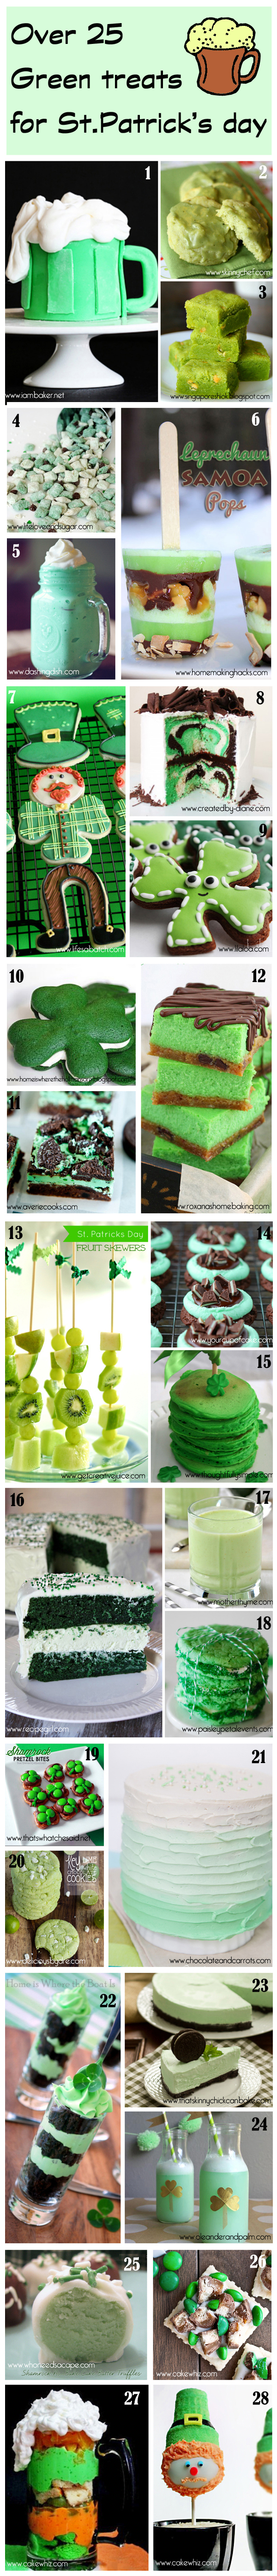 roundup of green treats for St.Patrick's day 10